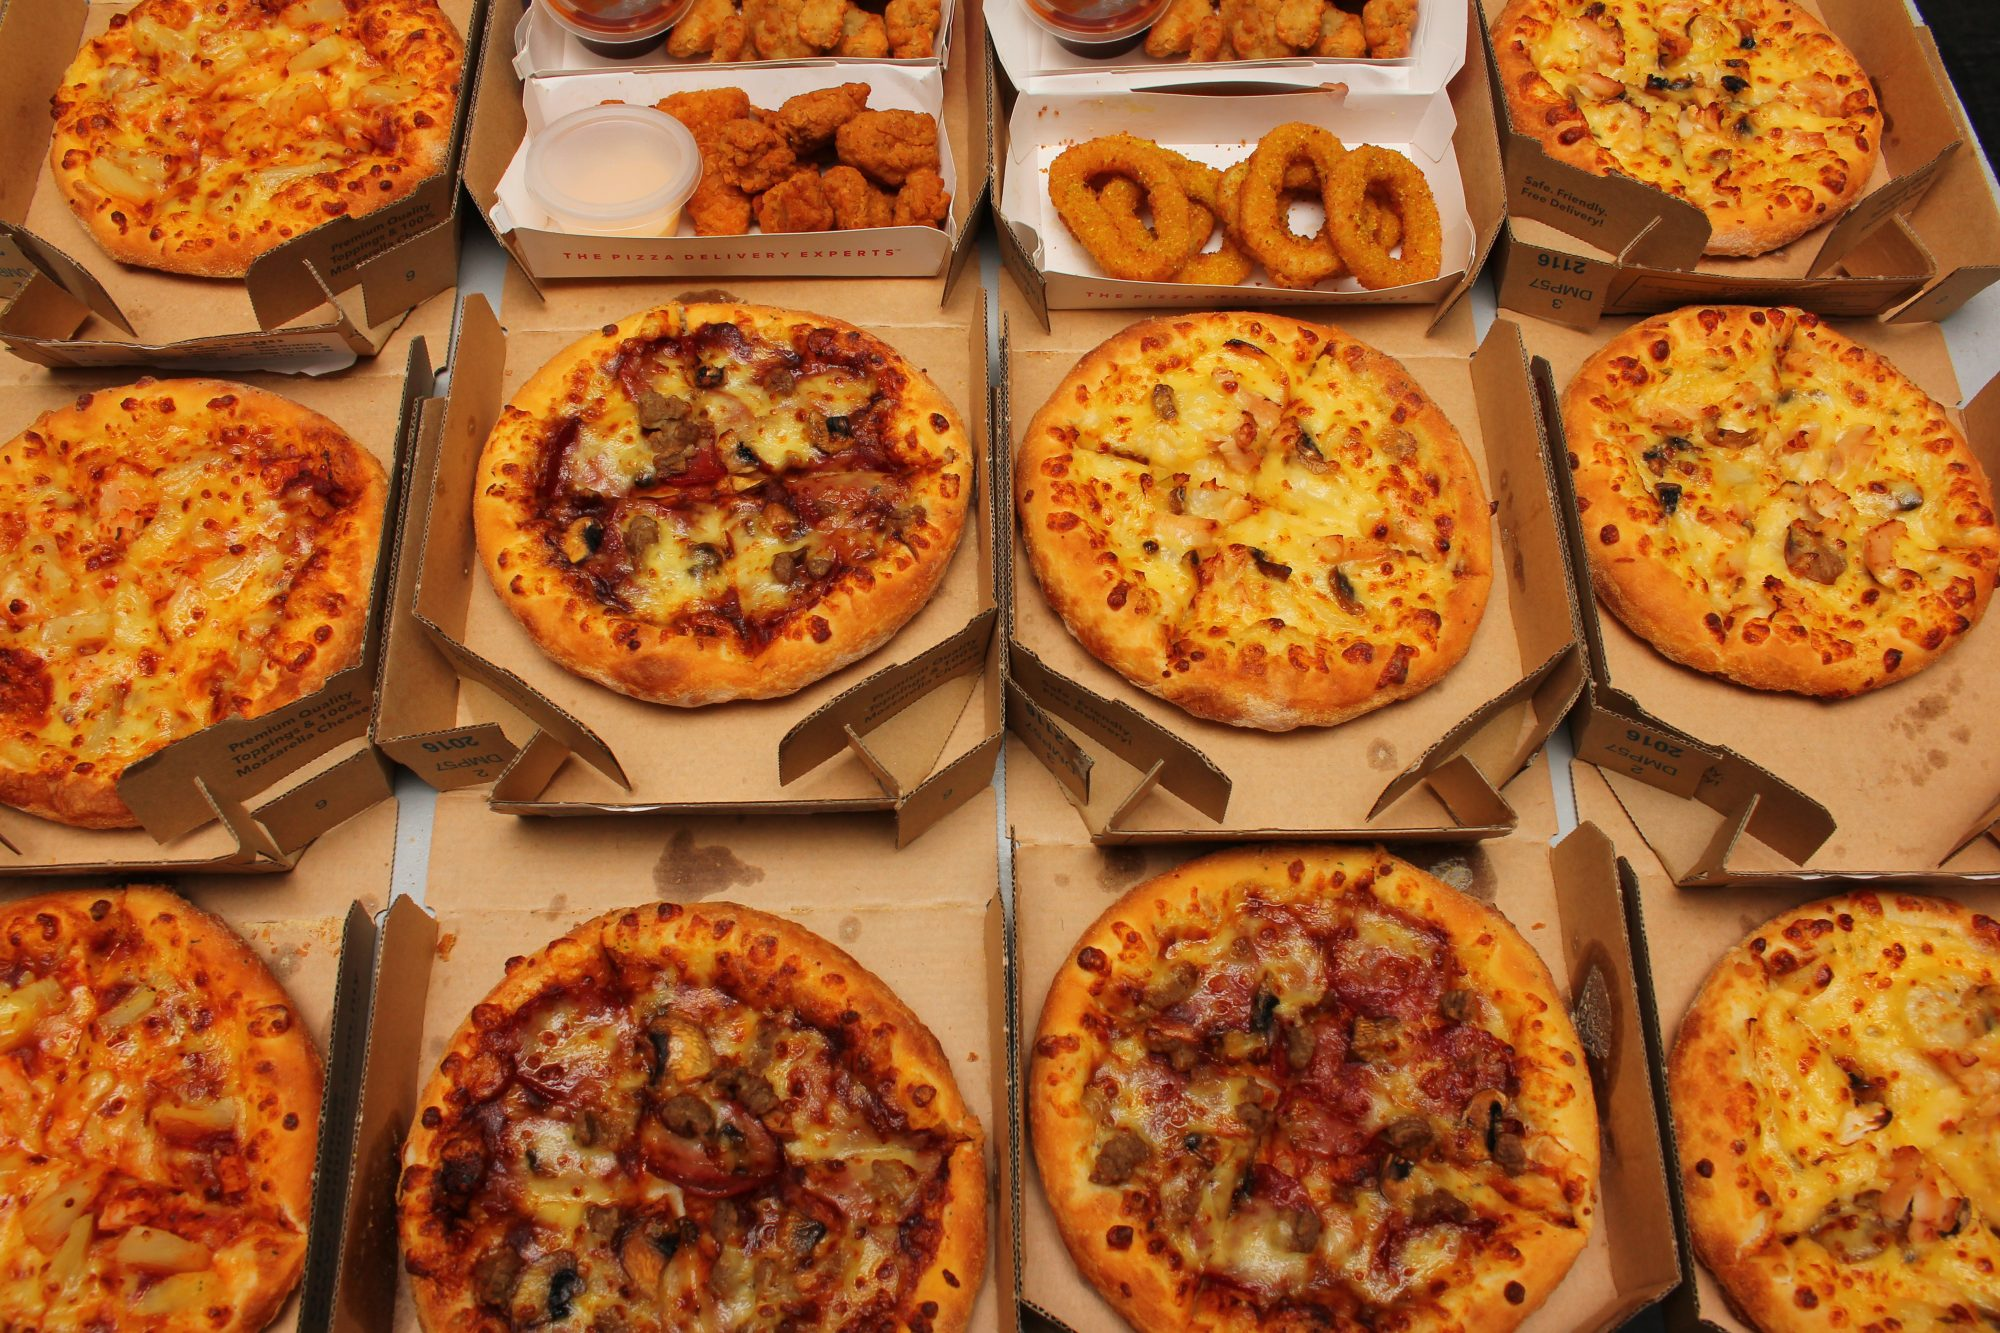 High Angle View Of Pizzas In Boxes On Table